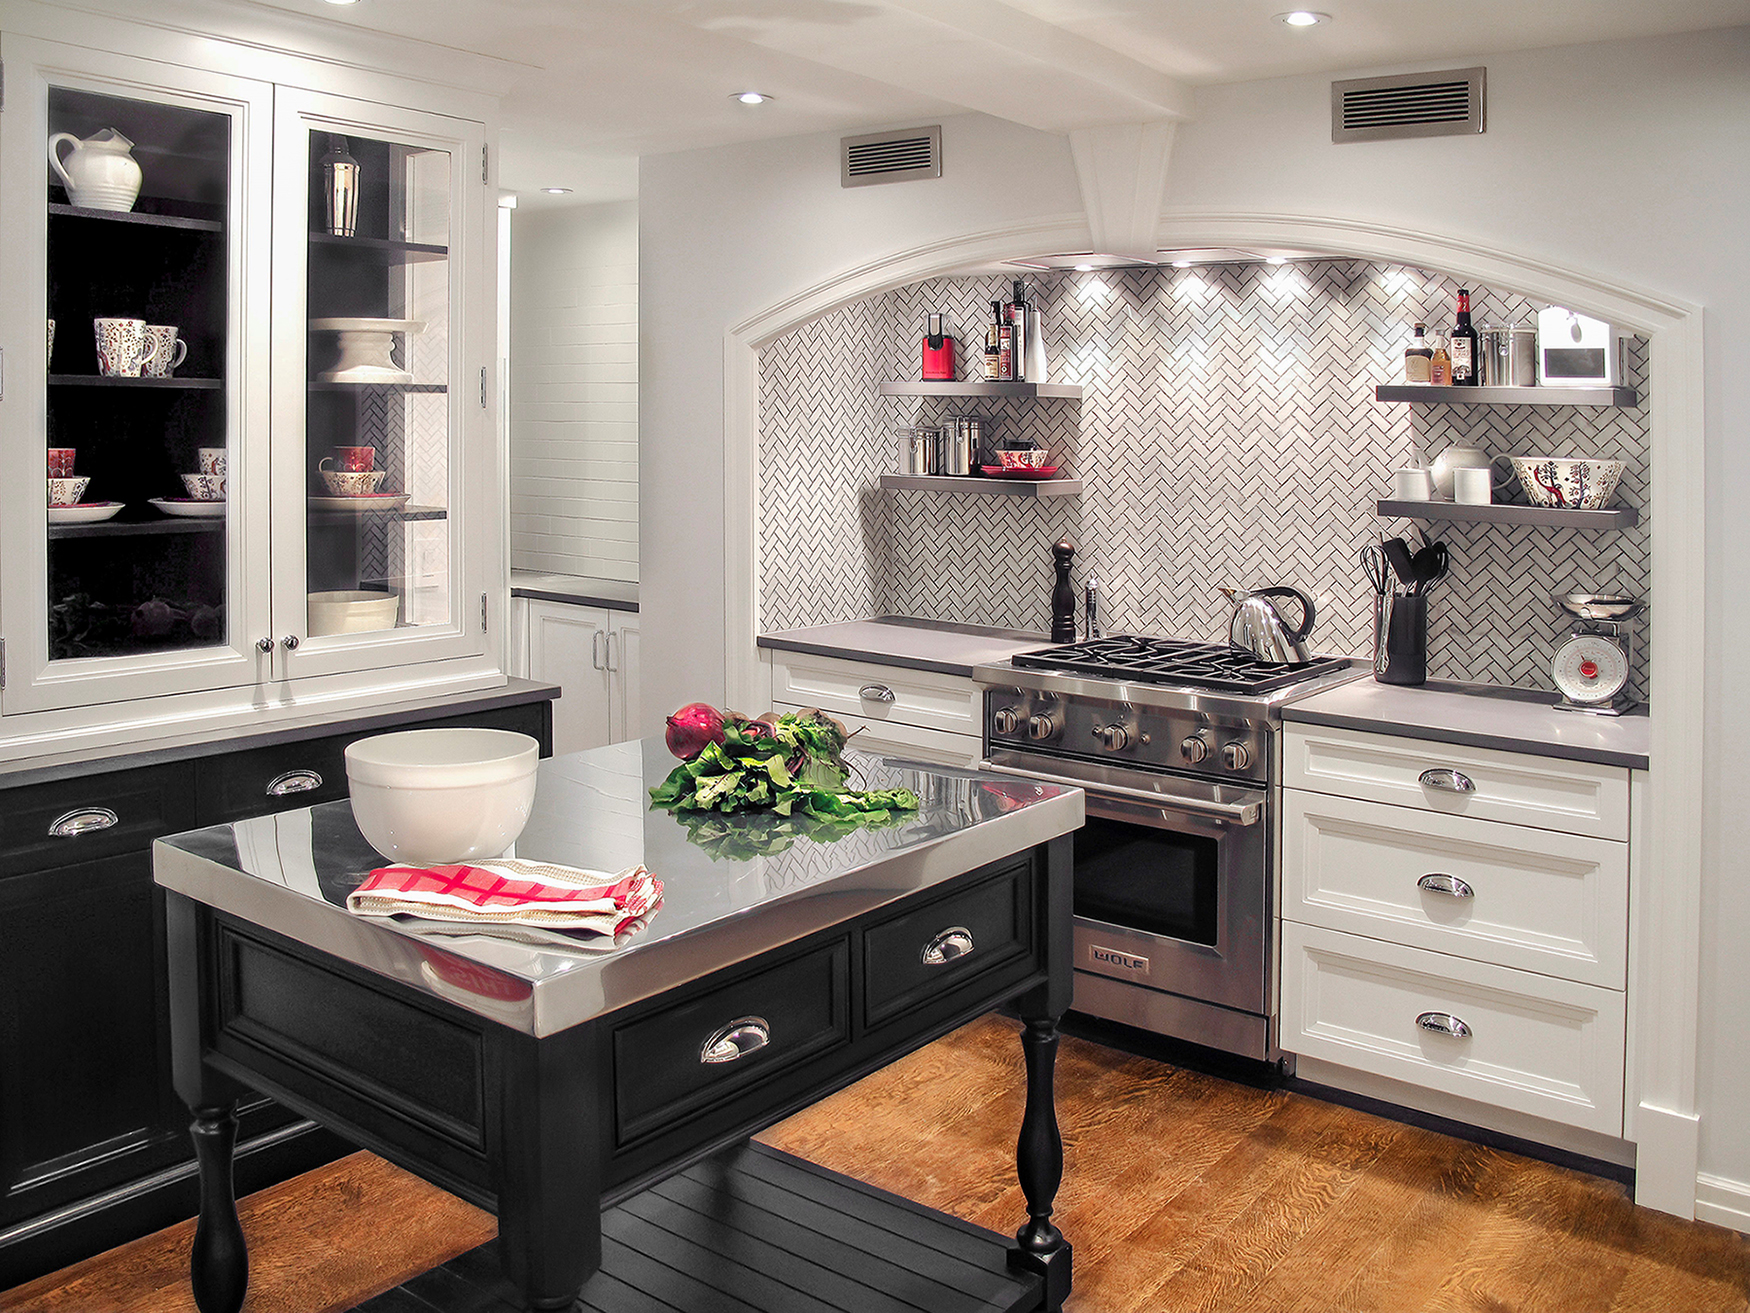 Townhouse Kitchens Image 14